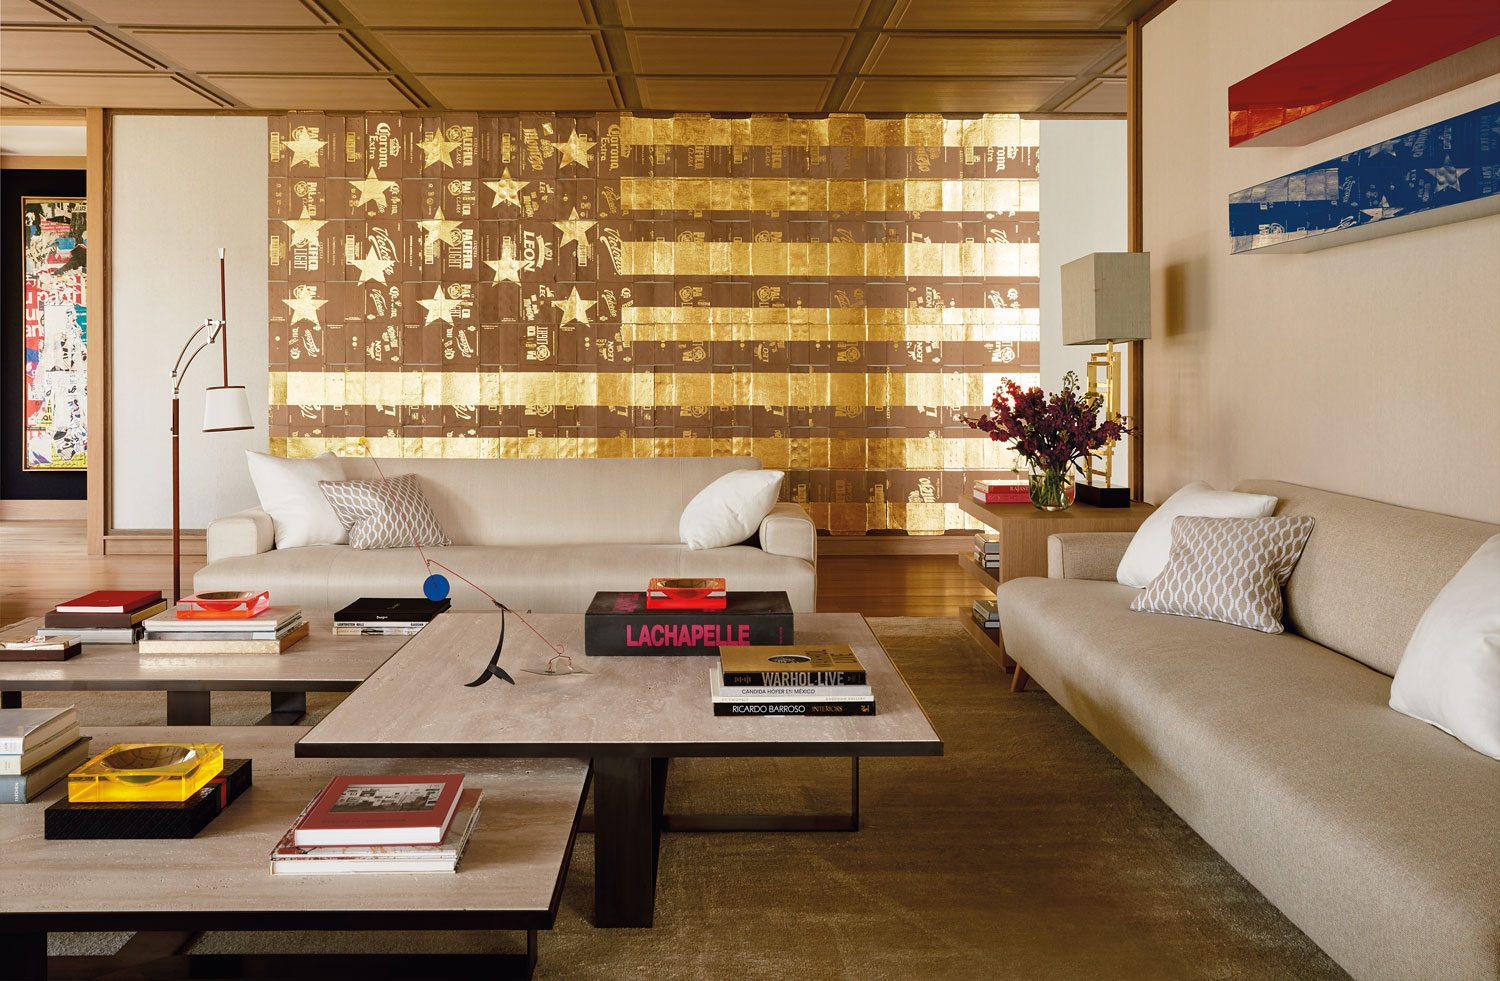 An overscale Danh Vo American flag painting and a two-part wall piece by John McCracken feature in the living area of collector Eugenio López's home. The tabletop sculpture is by Alexander Calder.